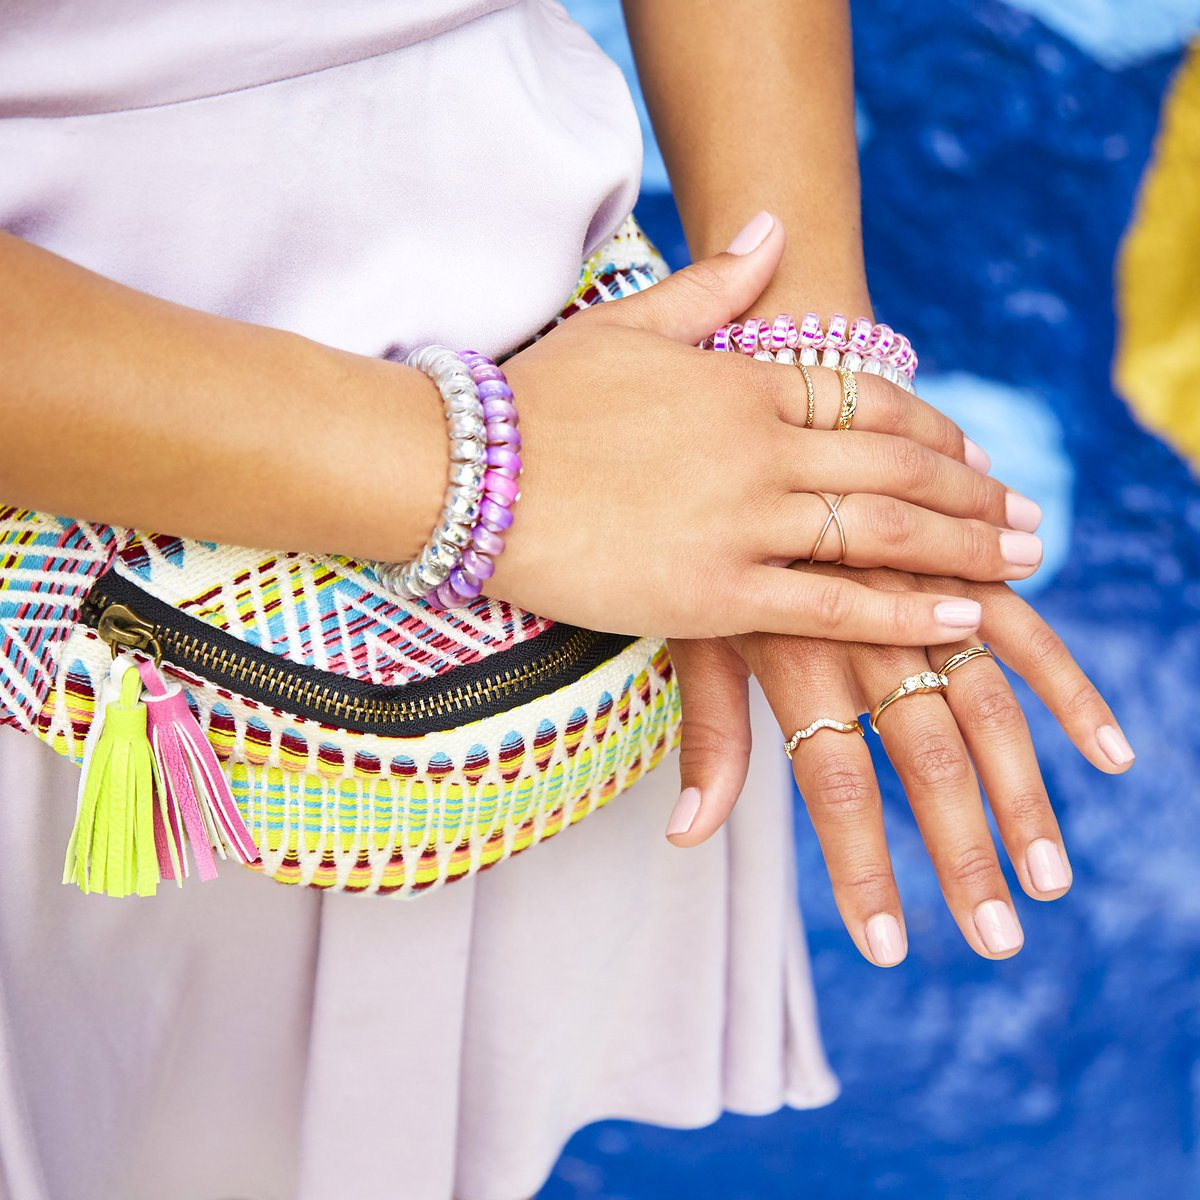 Mix and match your bracelets this summer 🌈💖 Shop our bracelets in store & online  #ItsAtClaireshttps://t.co/x4N243a7gg